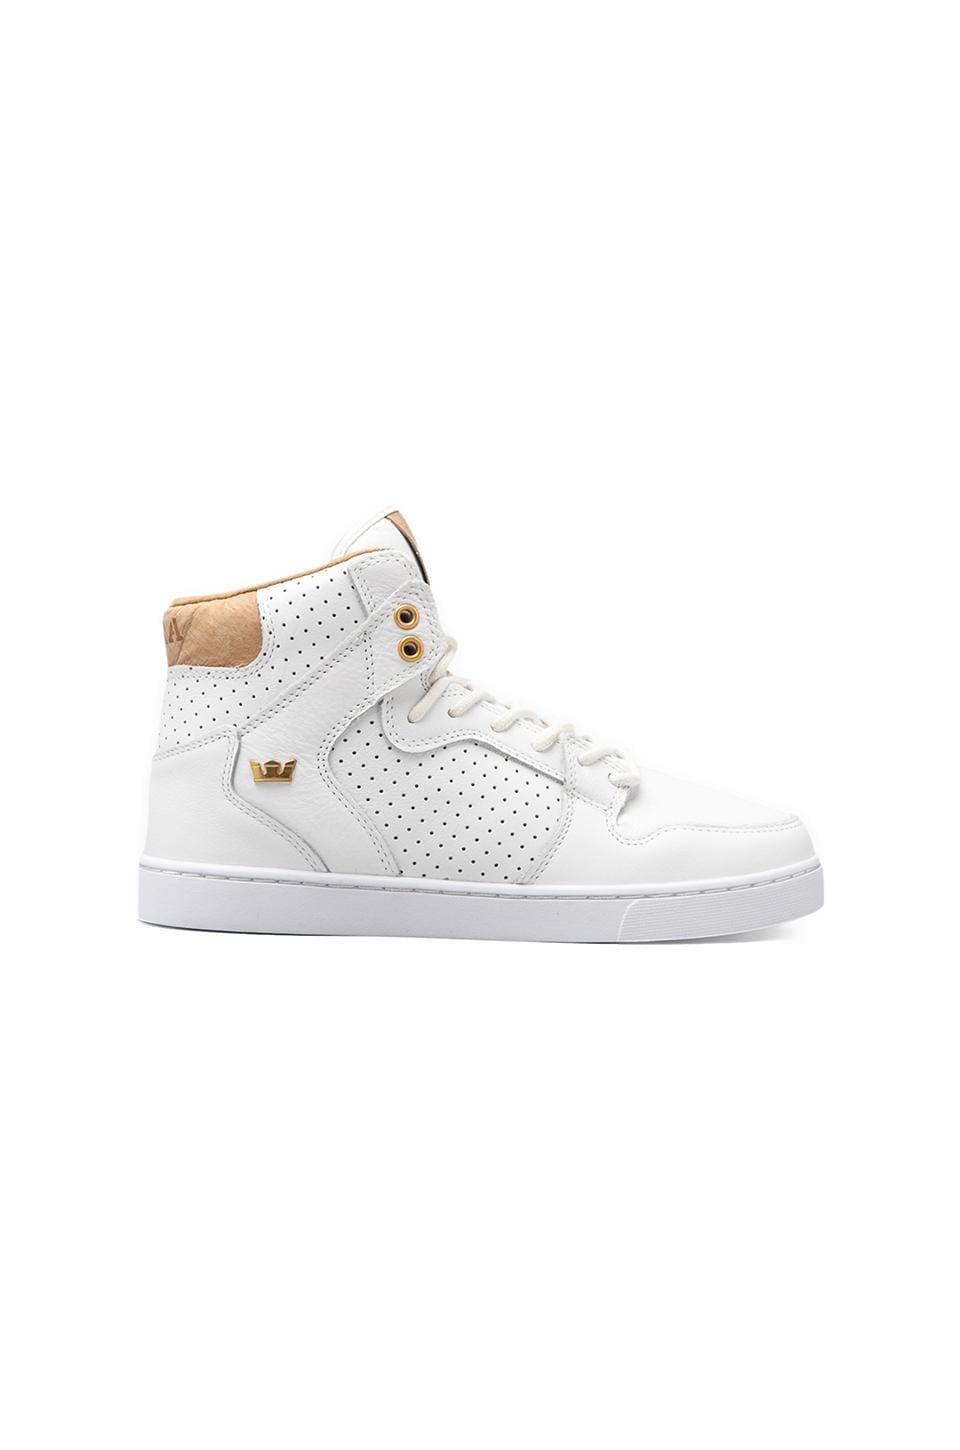 Supra Vaider LX Leather in White